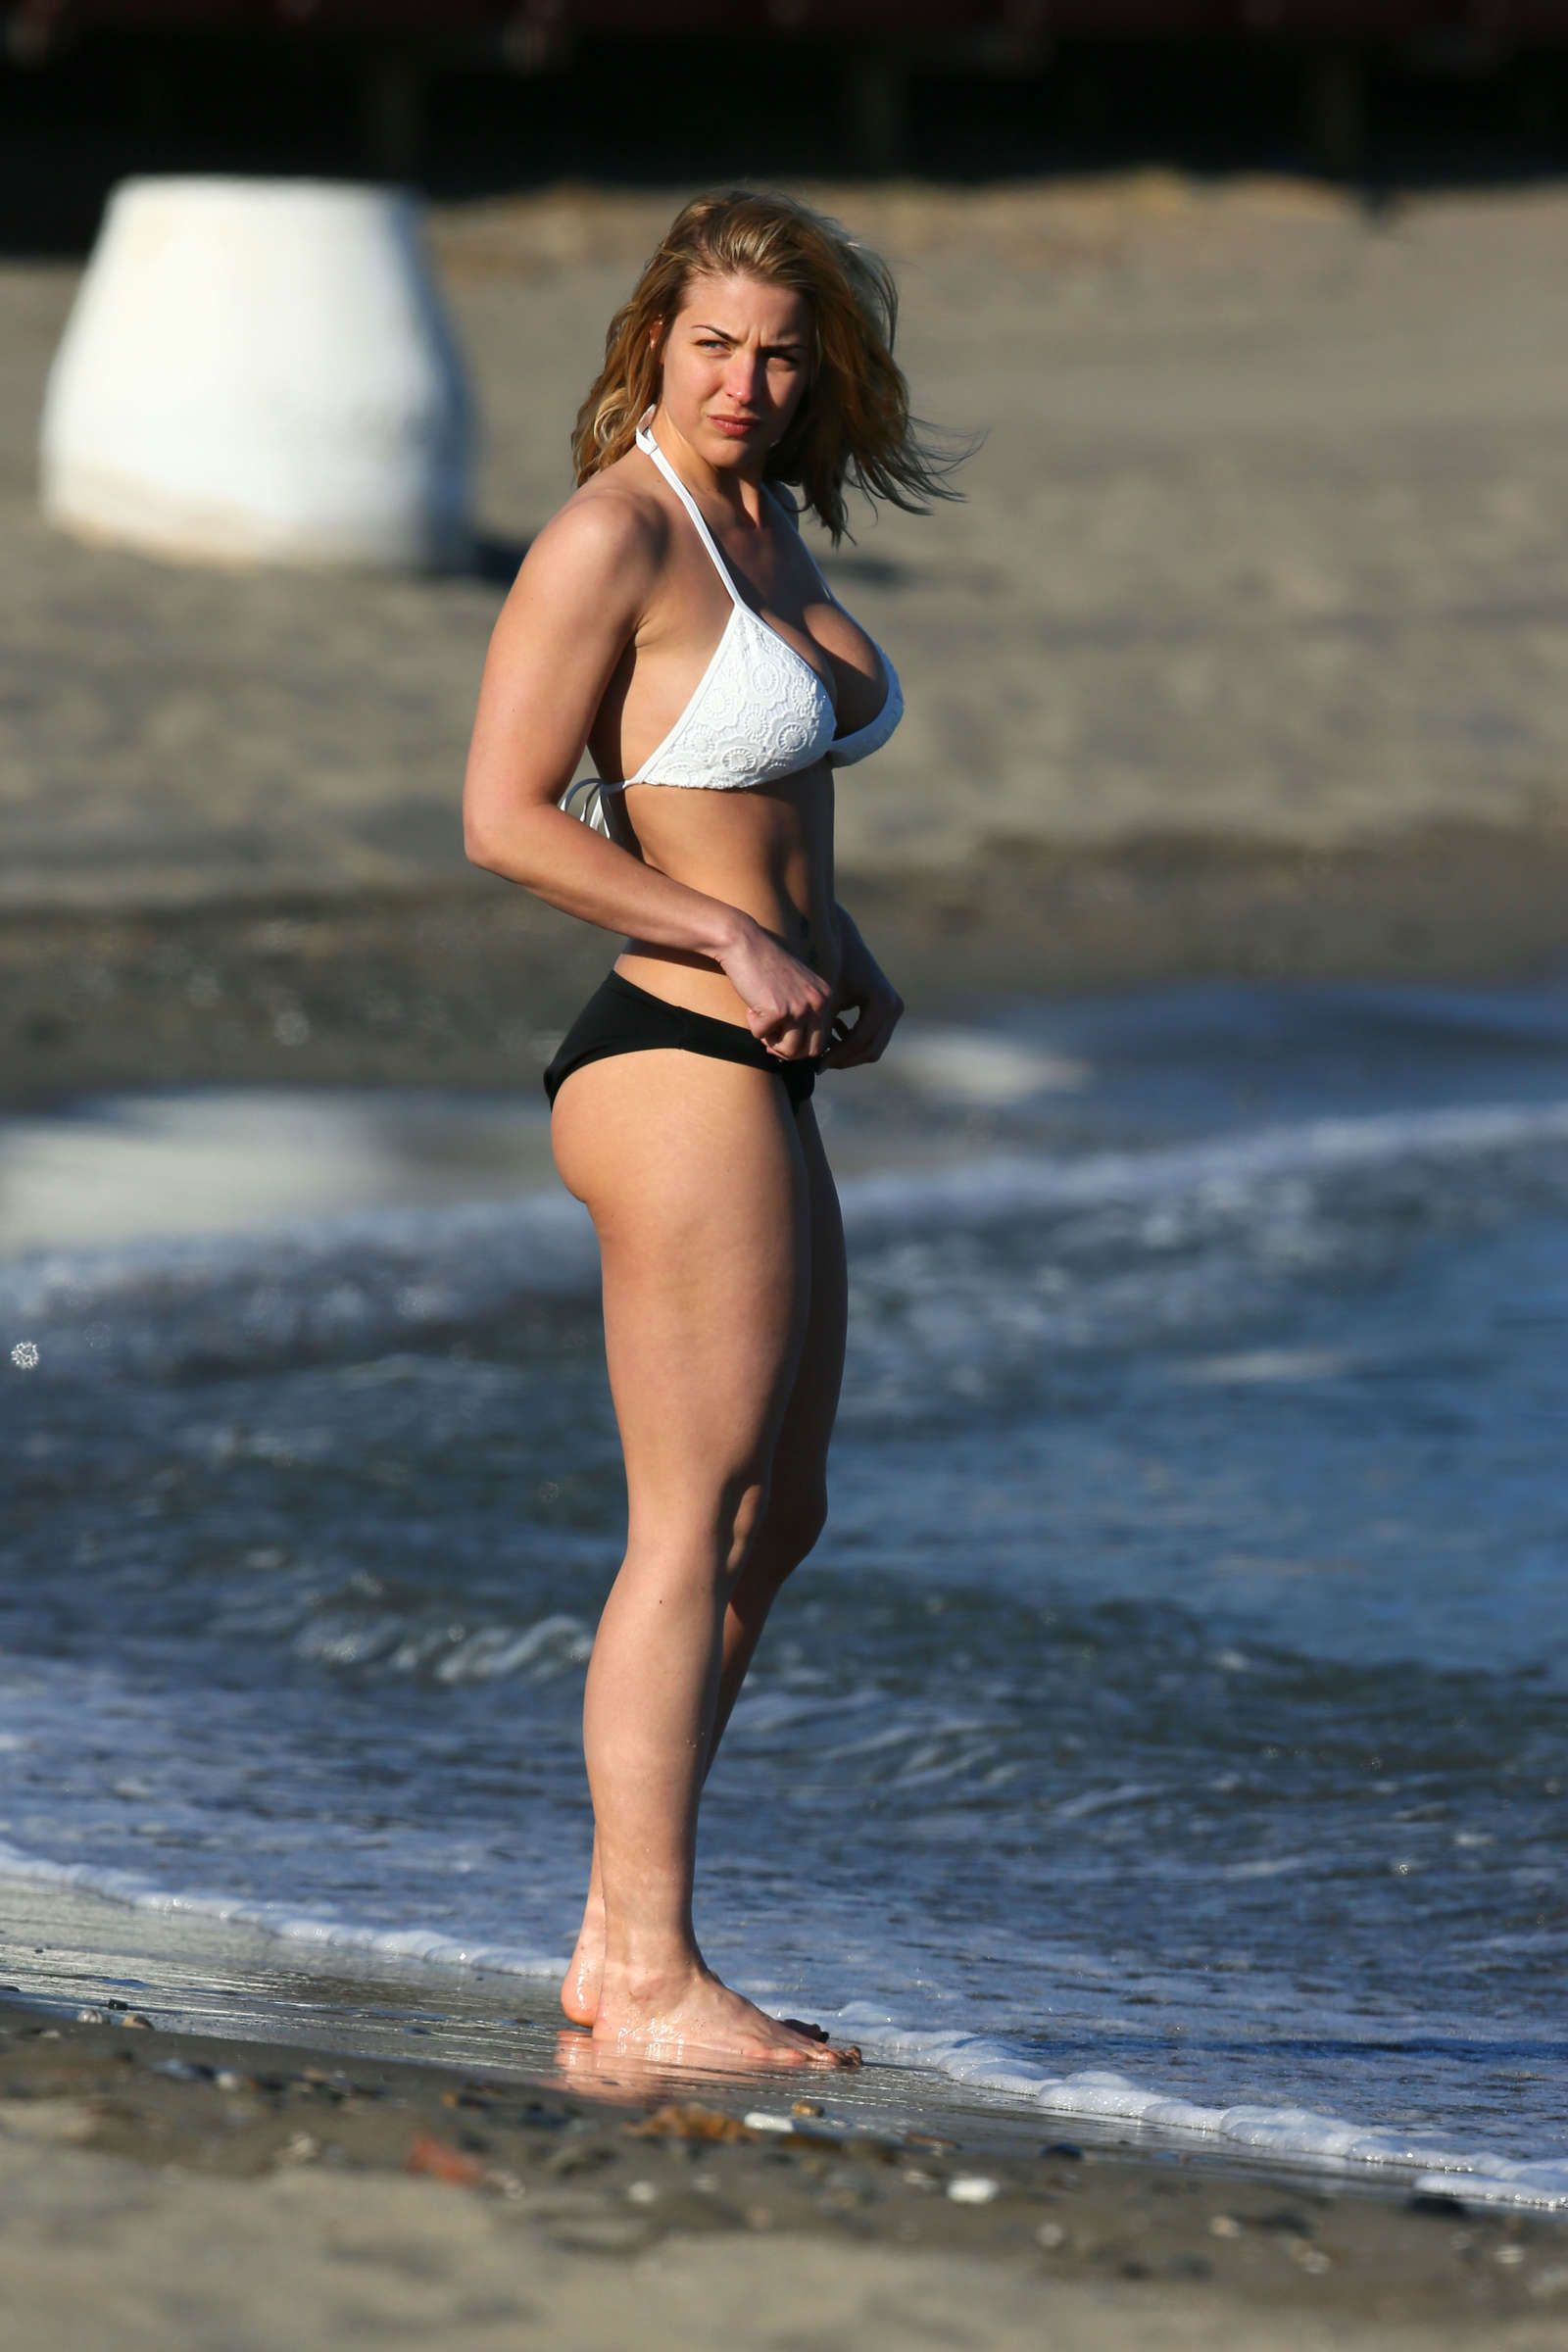 Discussion on this topic: Morena baccarin tits, gemma-atkinson-paparazzi/